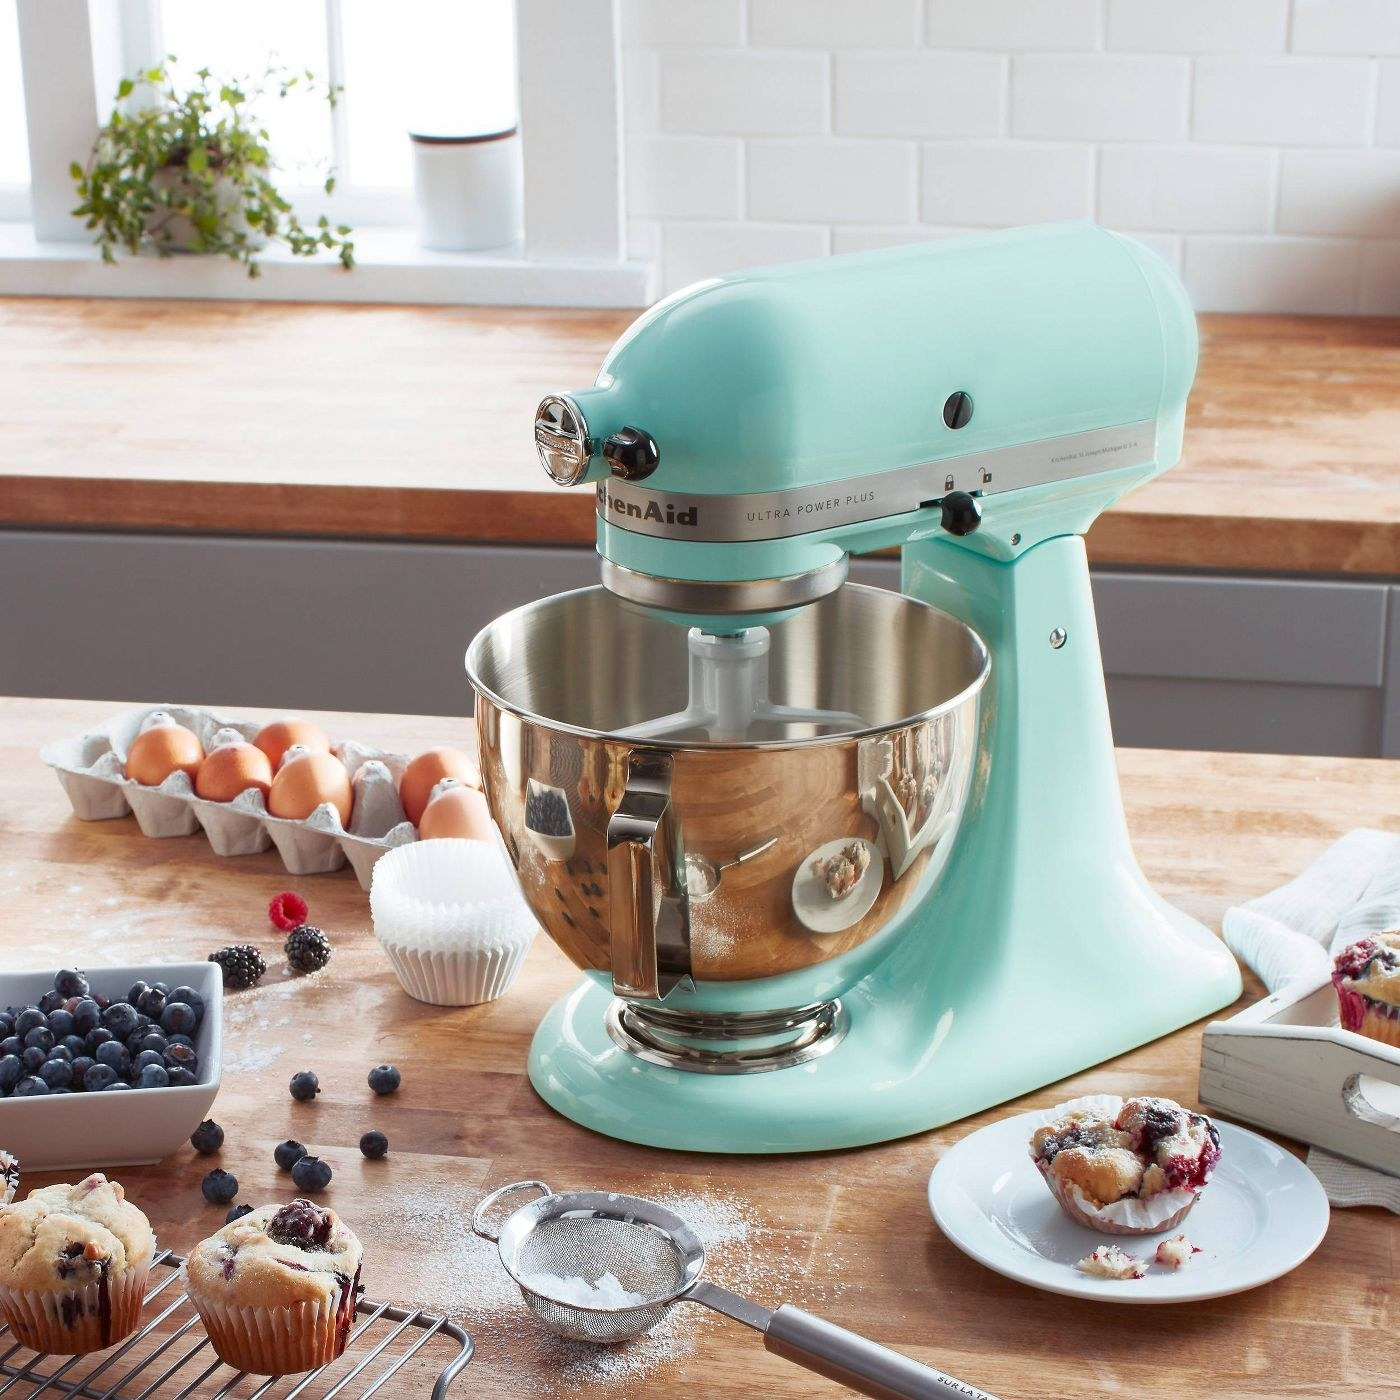 blue kitchenaid stand mixer making muffin batter with ingredients all around it